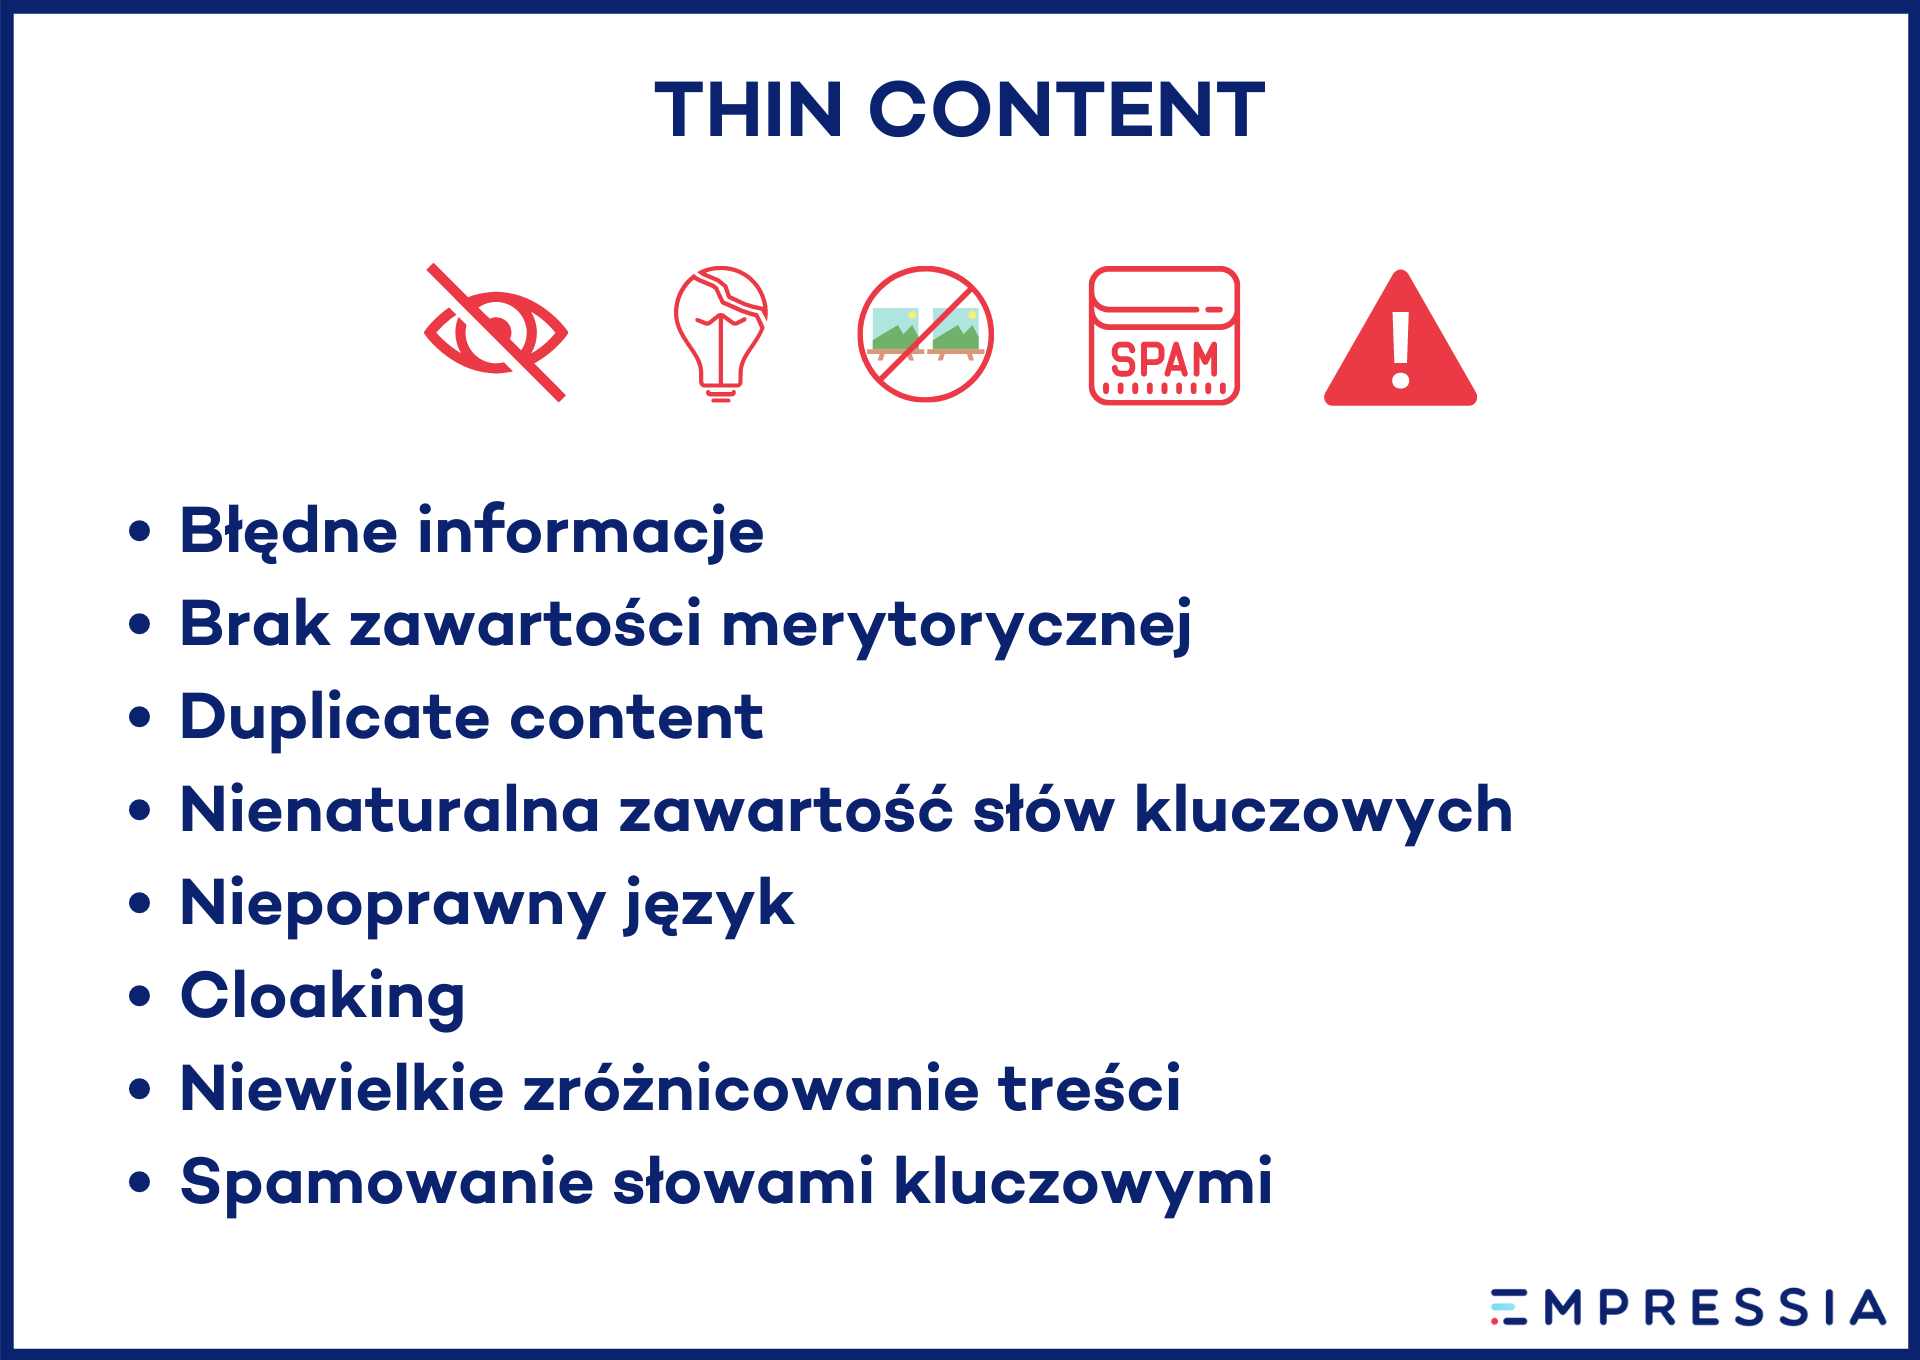 co to jest thin content